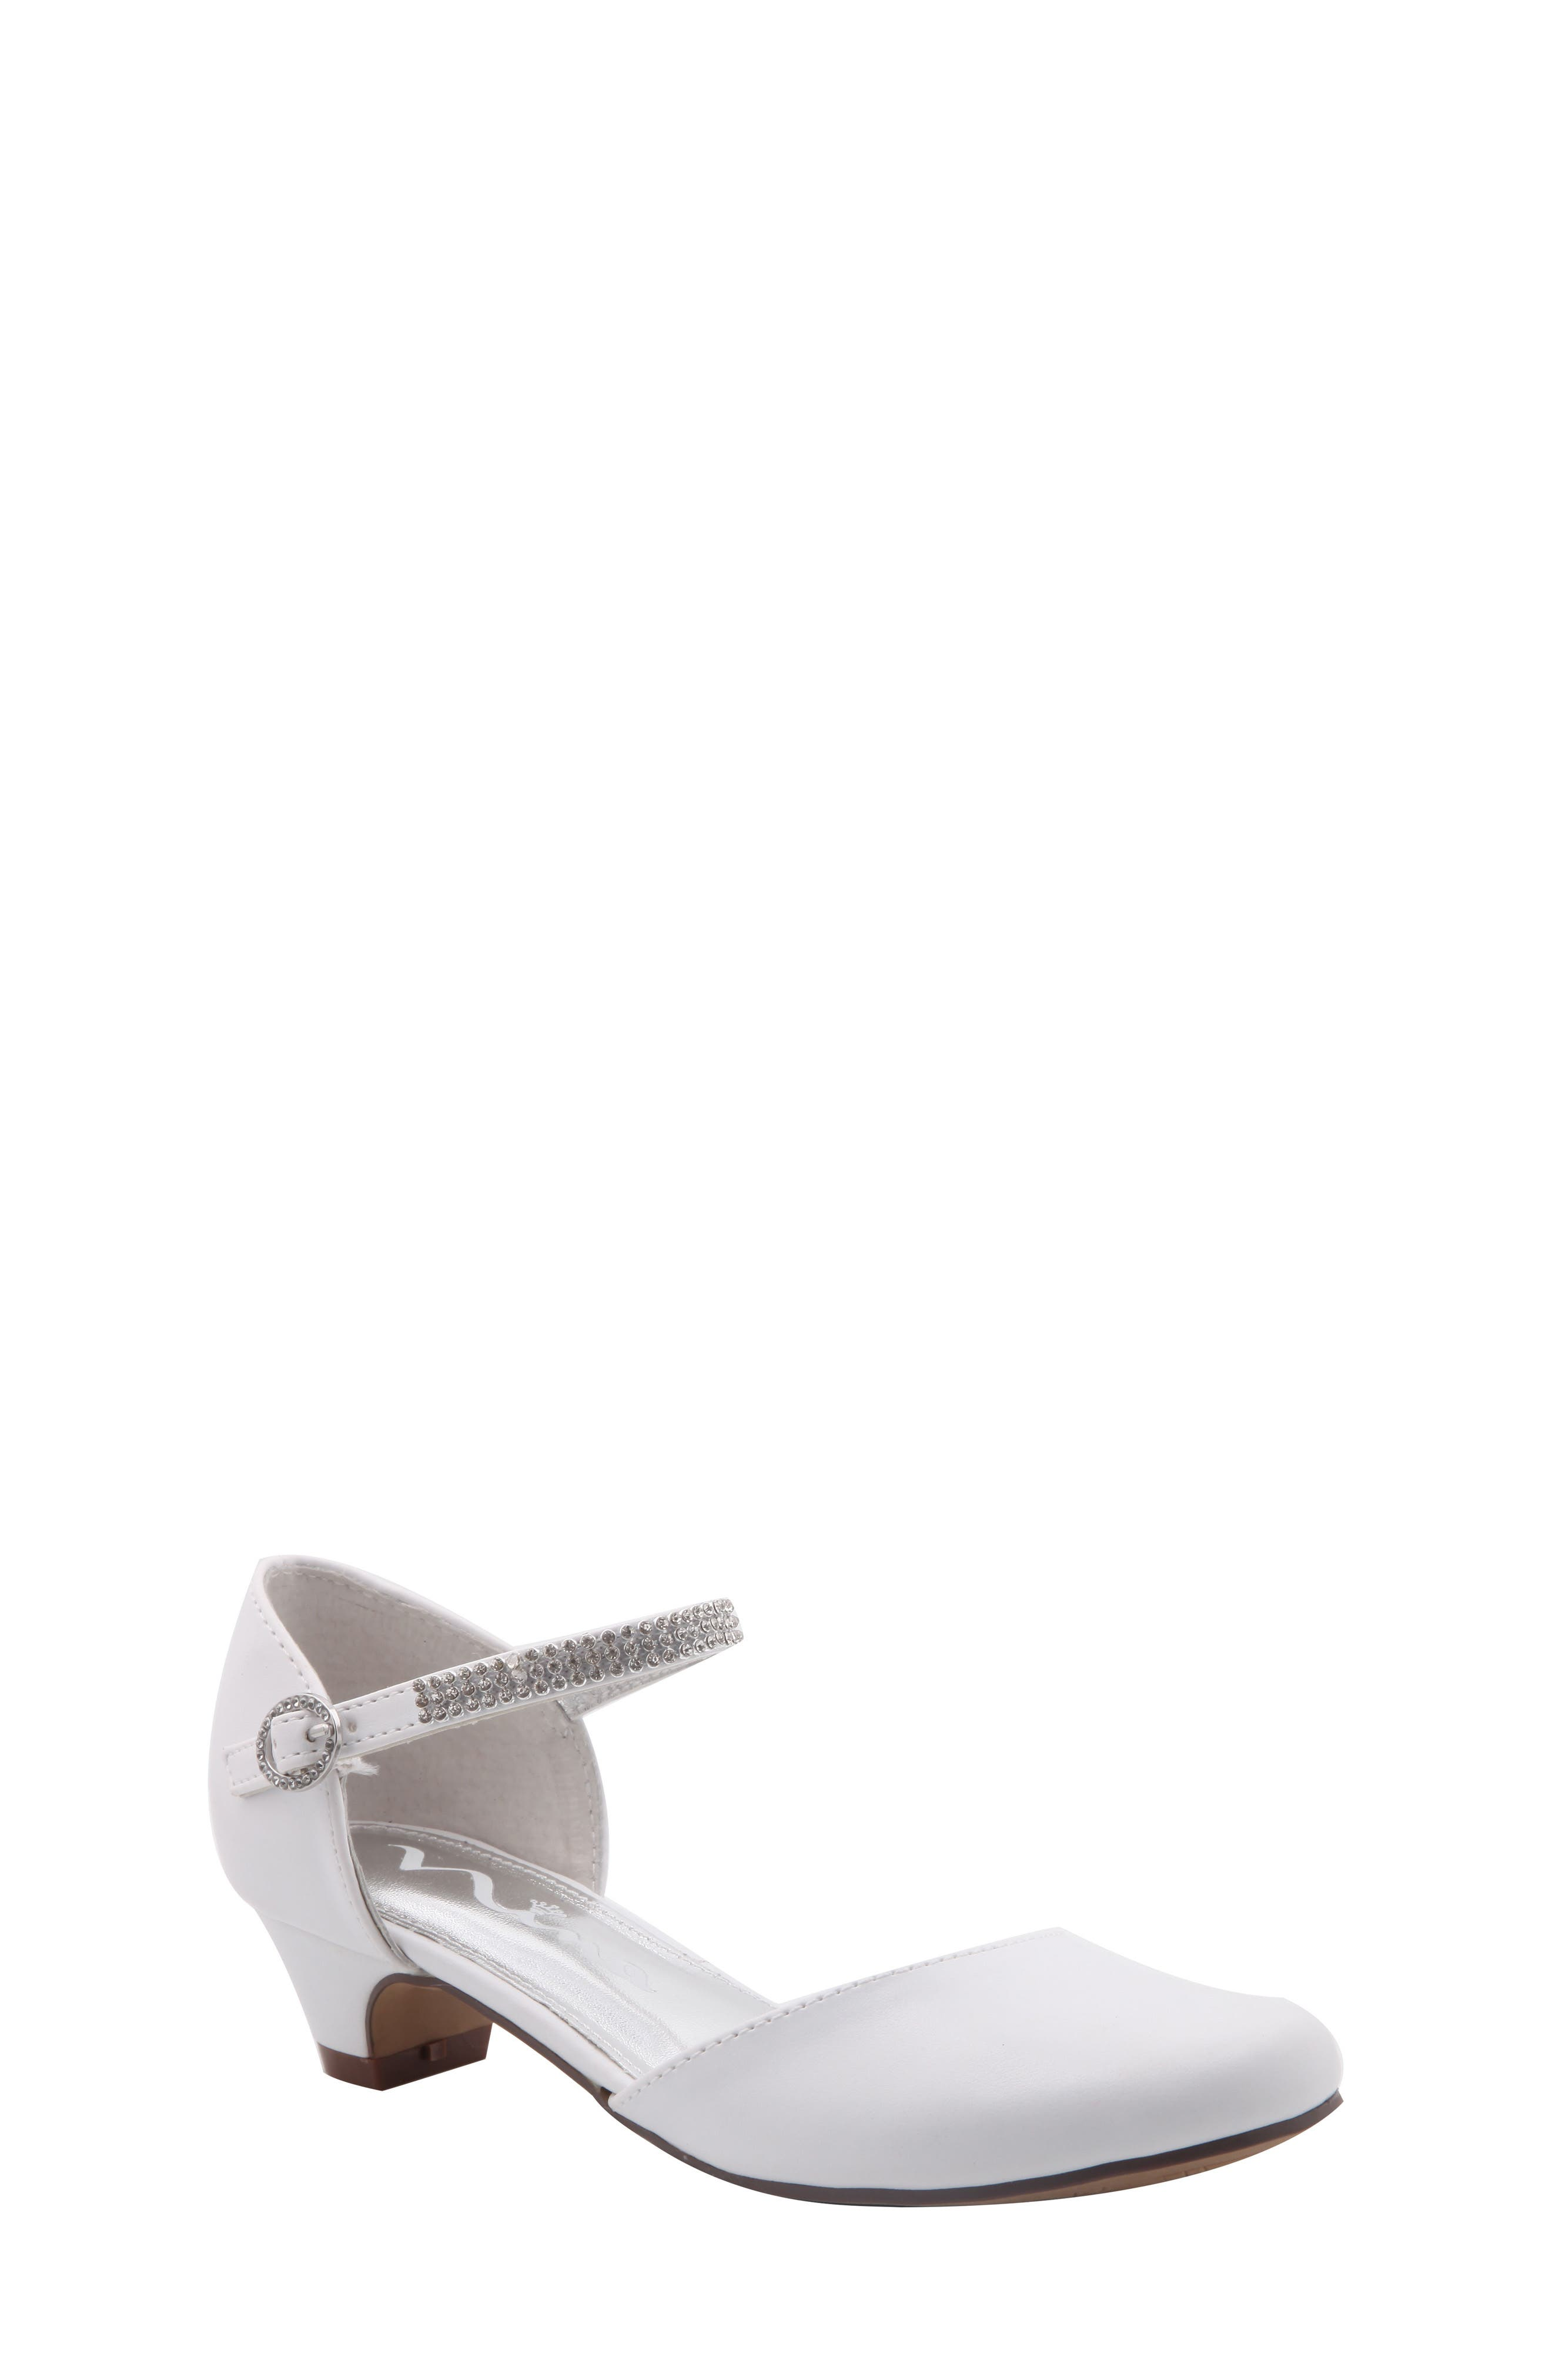 Cera Low Embellished Pump,                         Main,                         color, White Smooth